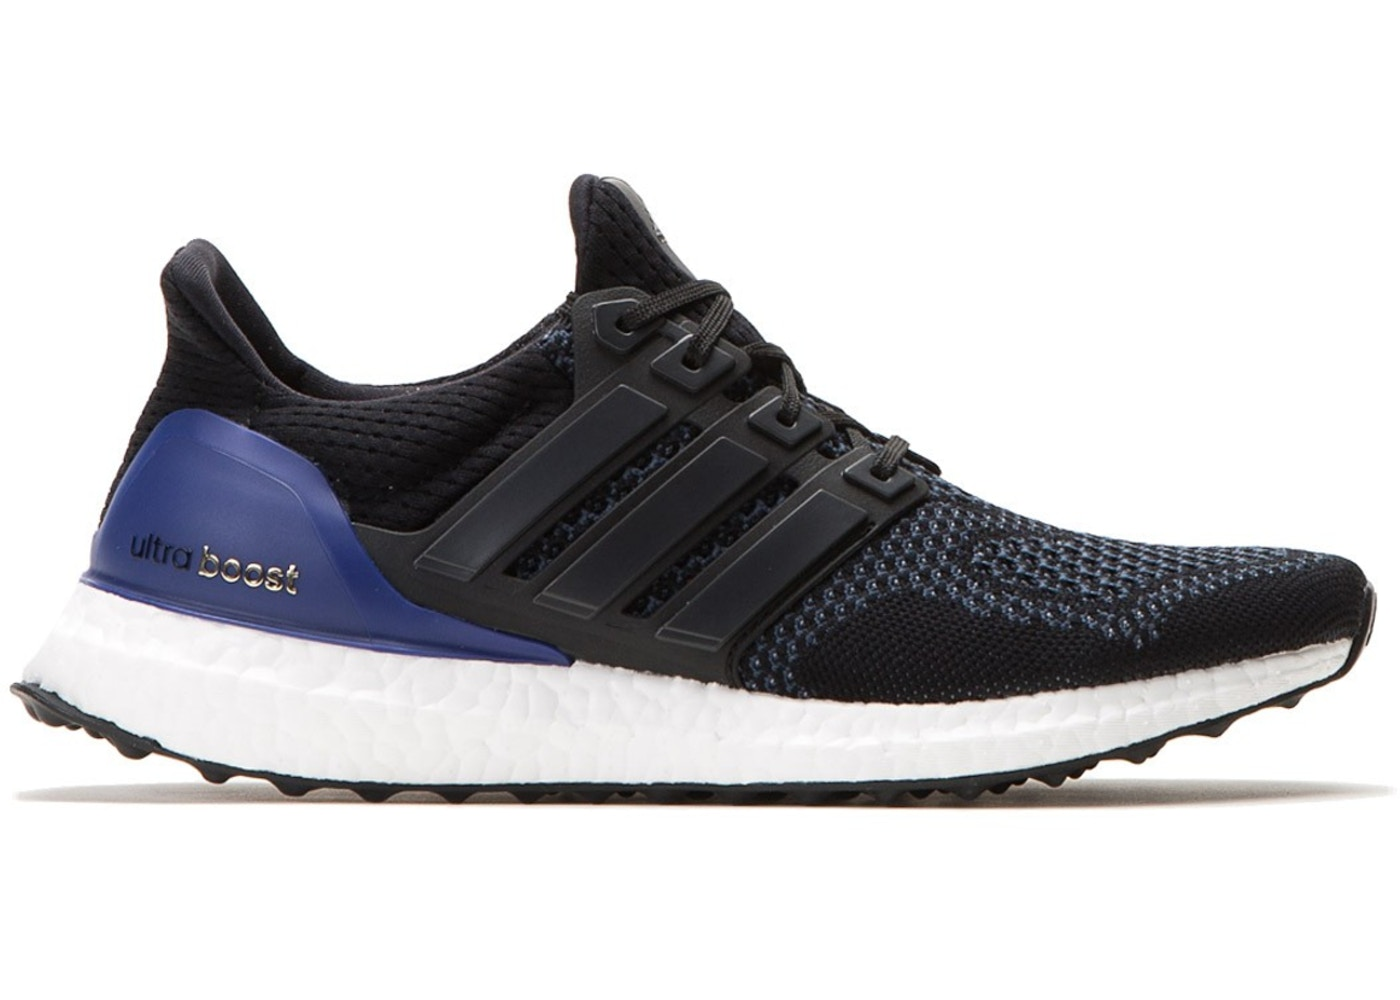 low priced a5086 8aaf4 Buy adidas Ultra Boost 1.0 Shoes & Deadstock Sneakers